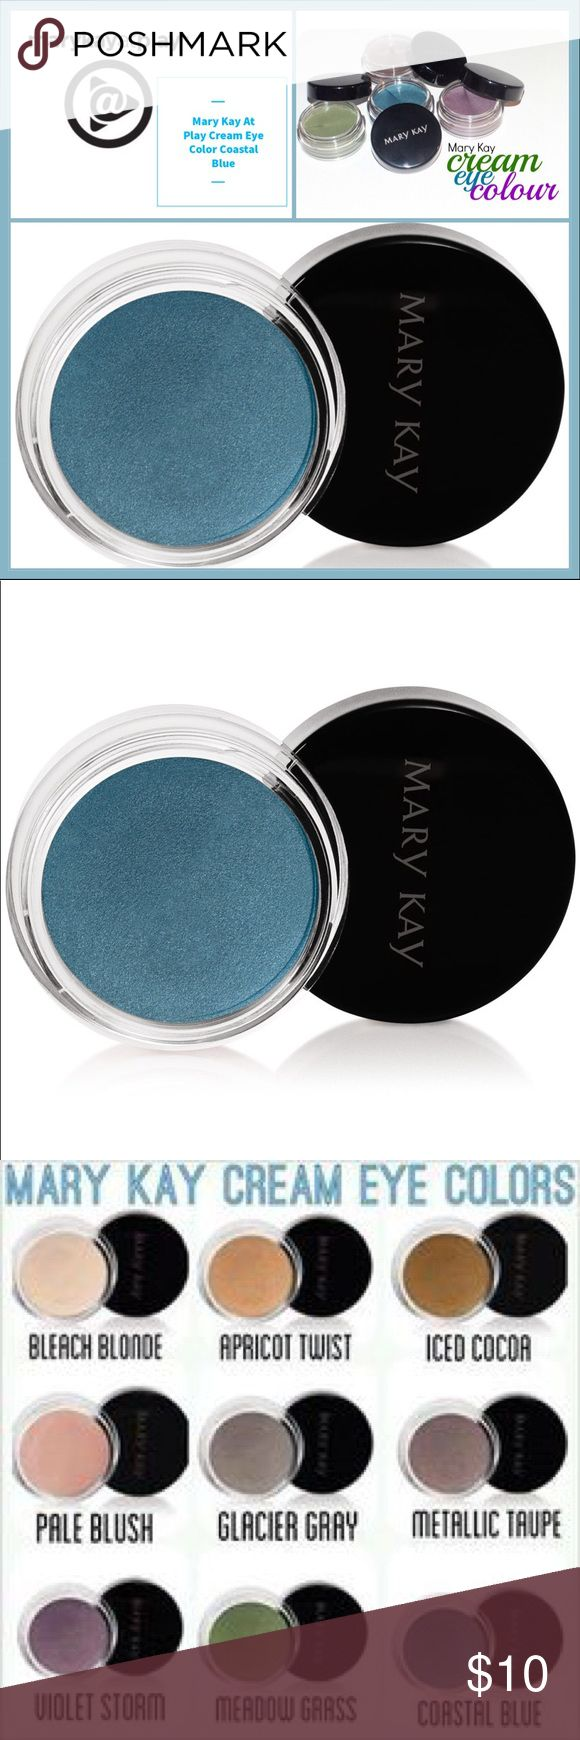 🆕 Mary Kay Cream Eye Color Coastal Blue 🆕 Mary Kay Cream Eye Color Coastal Blue ▪️This soft, creamy, long-wearing formula glides on easily, lasts for 10 hours and can be applied in multiple layers to deliver more noticeable color while retaining a lightweight feel. ▪️Can be used alone or as a primer under mineral eye color. ▪️Dries quickly & does not transfer. ▪️Oil- and fragrance-free. ▪️Clinically tested for skin irritancy and allergy, suitable for sensitive skin and eyes. ▪️Note: In…